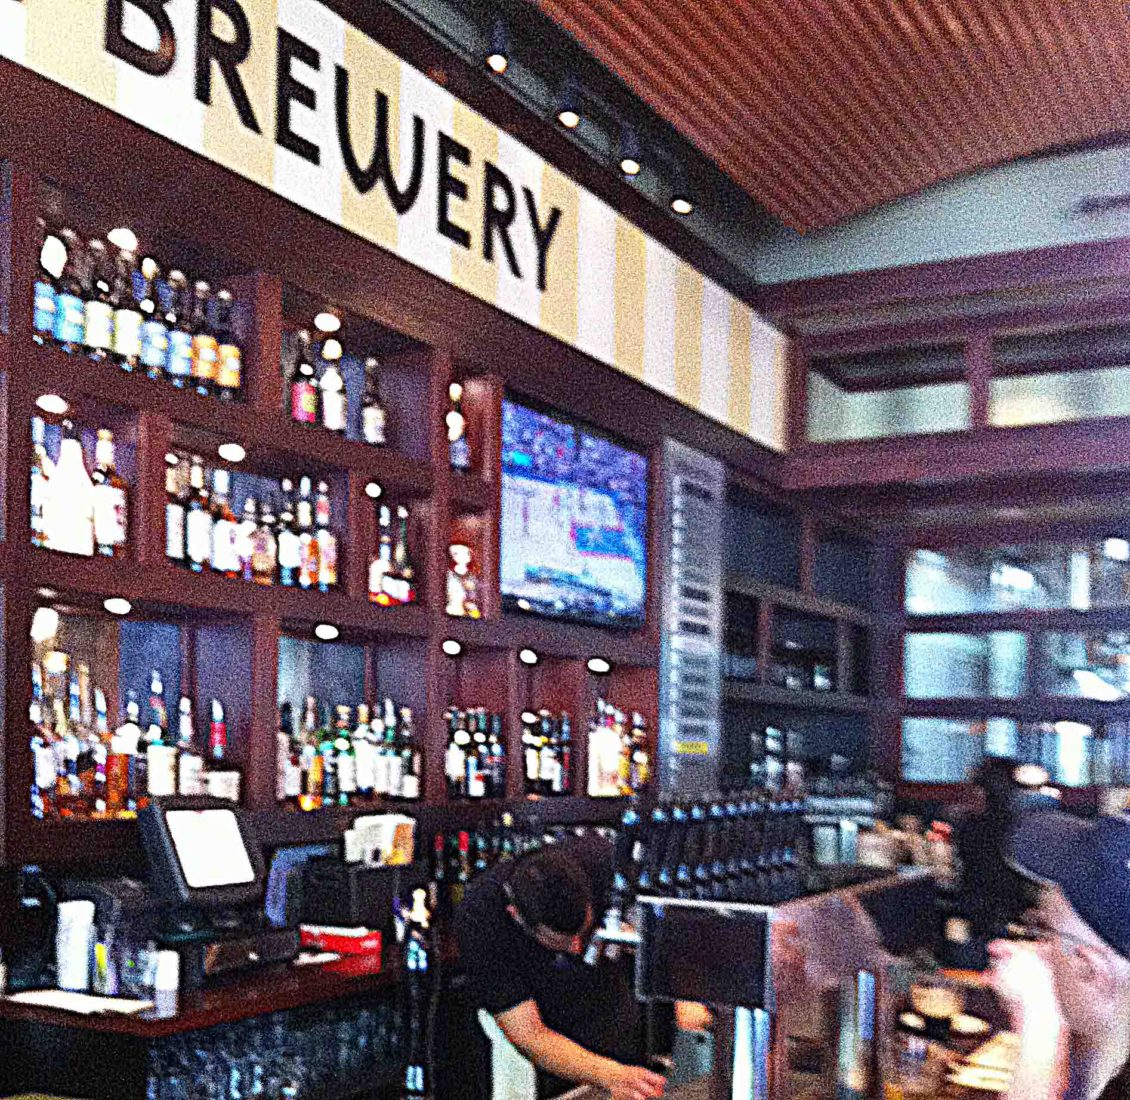 131. Iron HIll Brew Pub, Chestnut Hill PA 2012